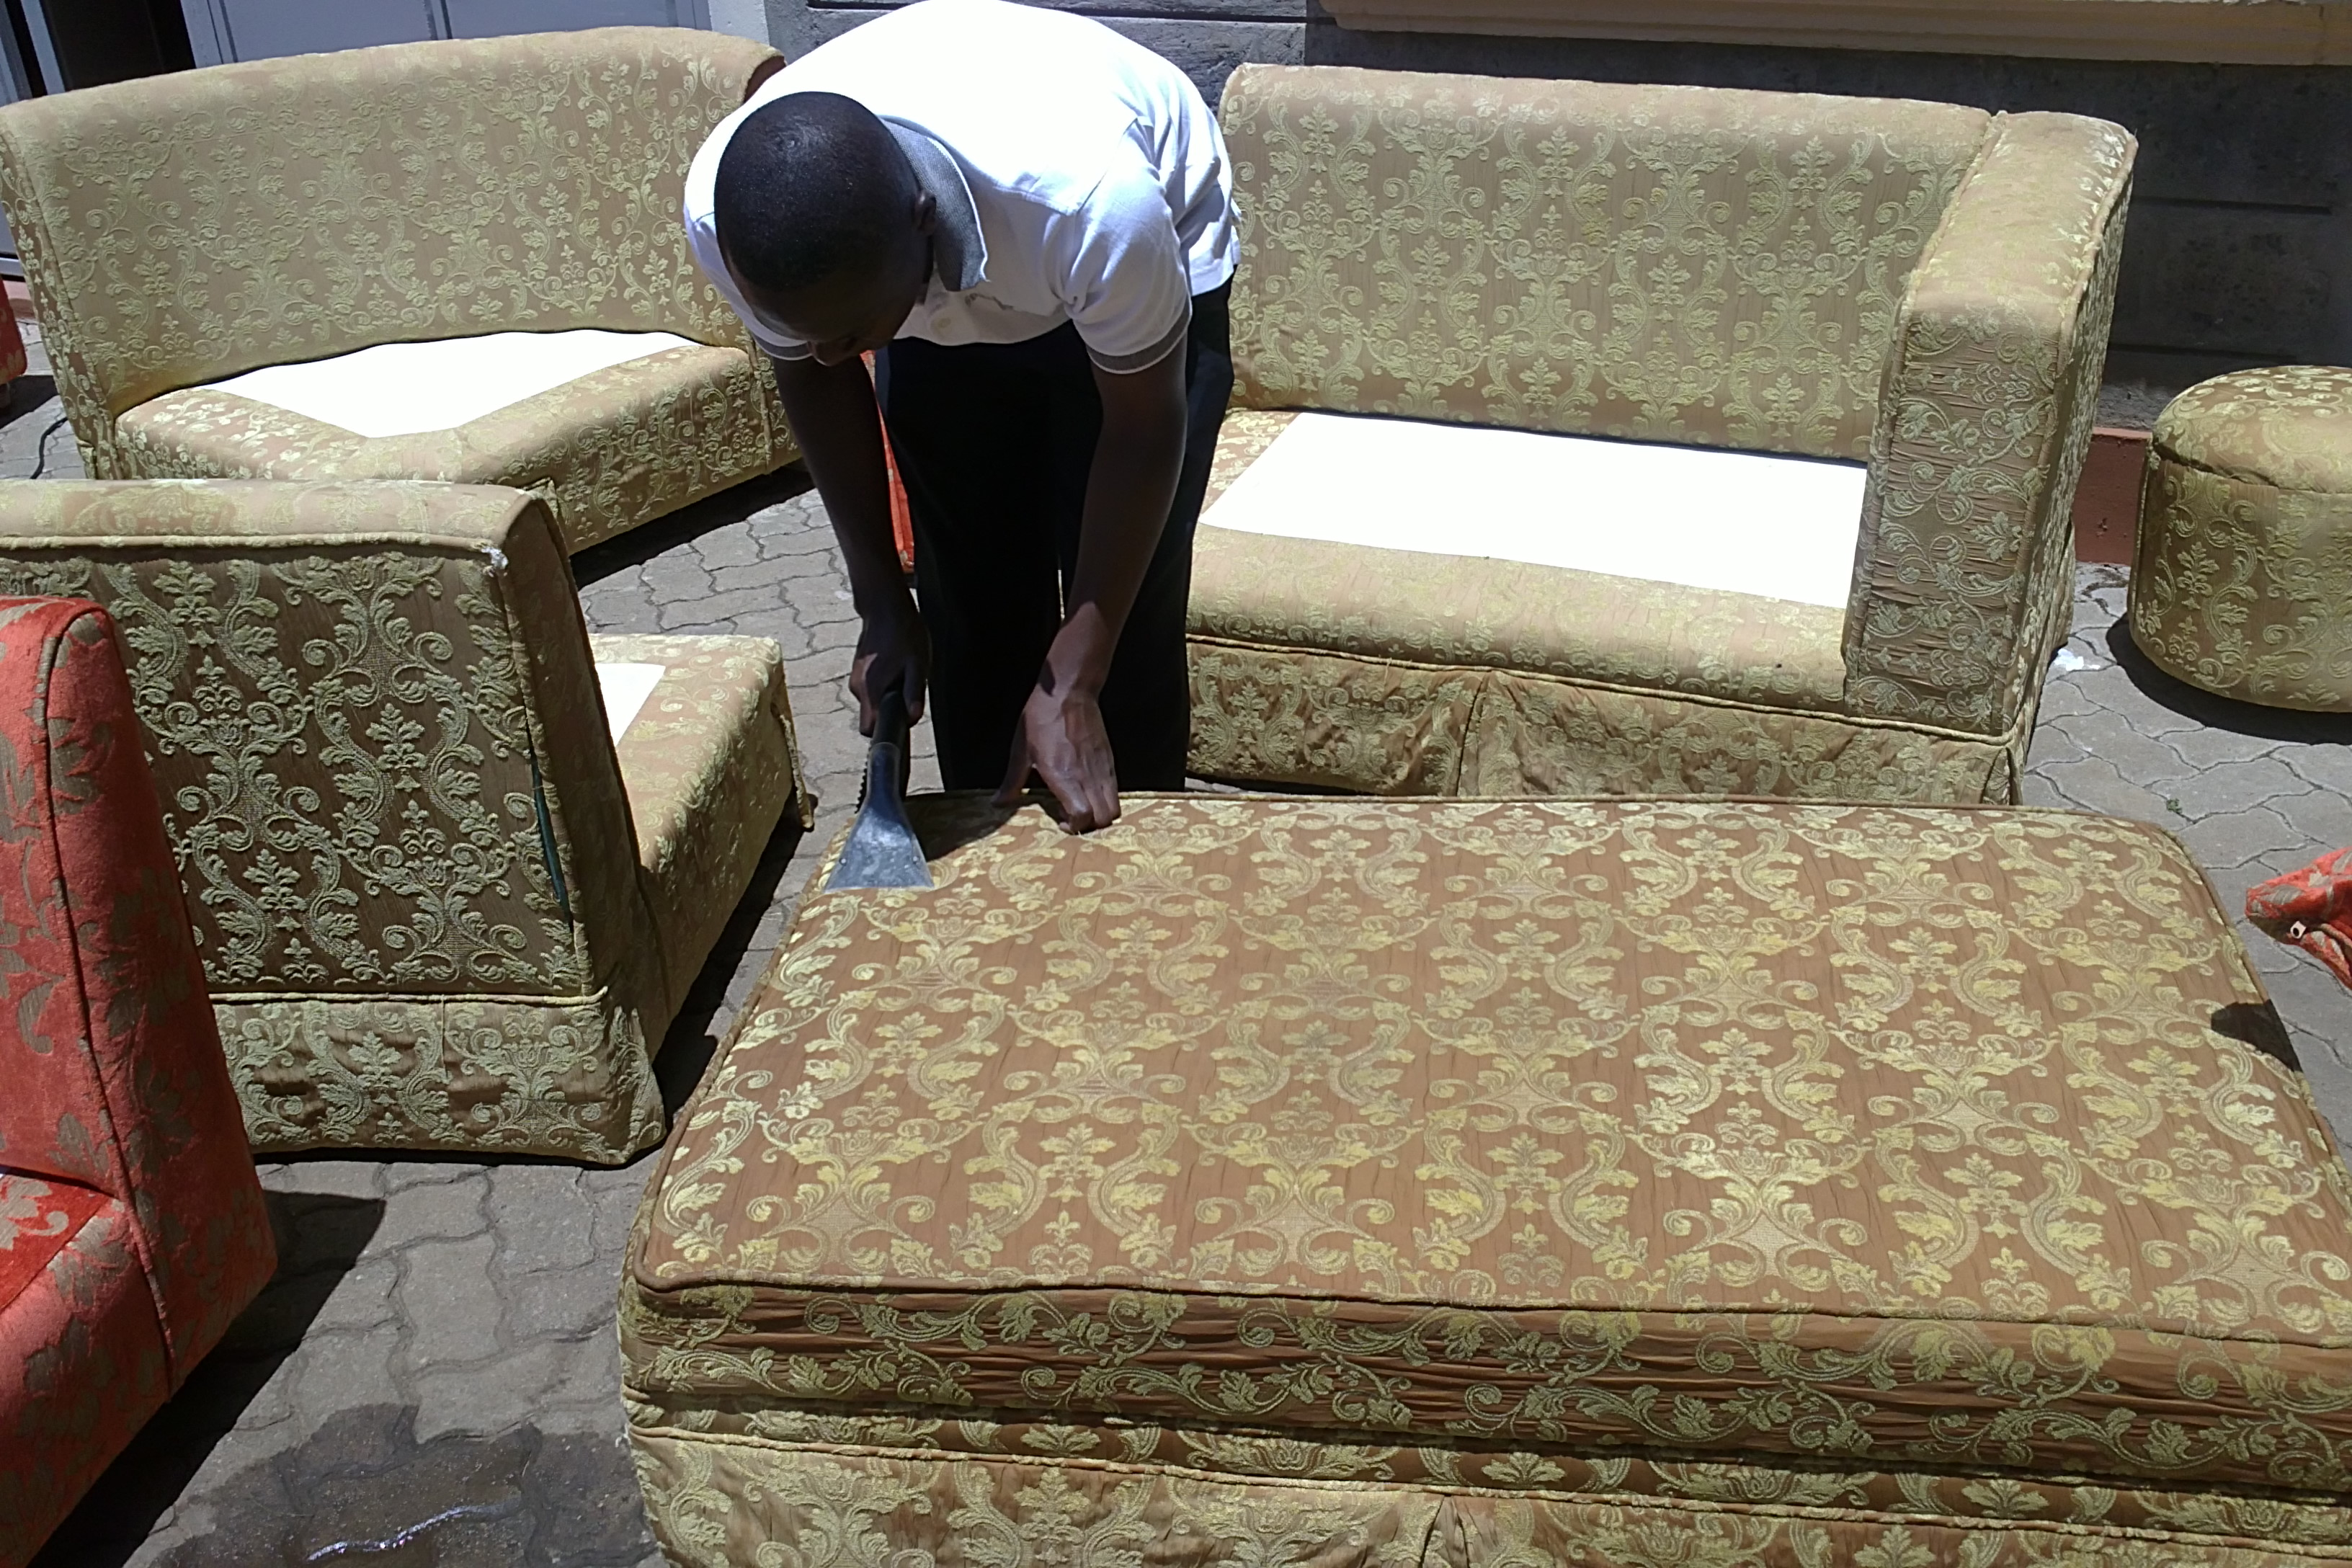 Carpet Upholstered Furniture Sofa Car Upholstery Interior Mattress Cleaning Services